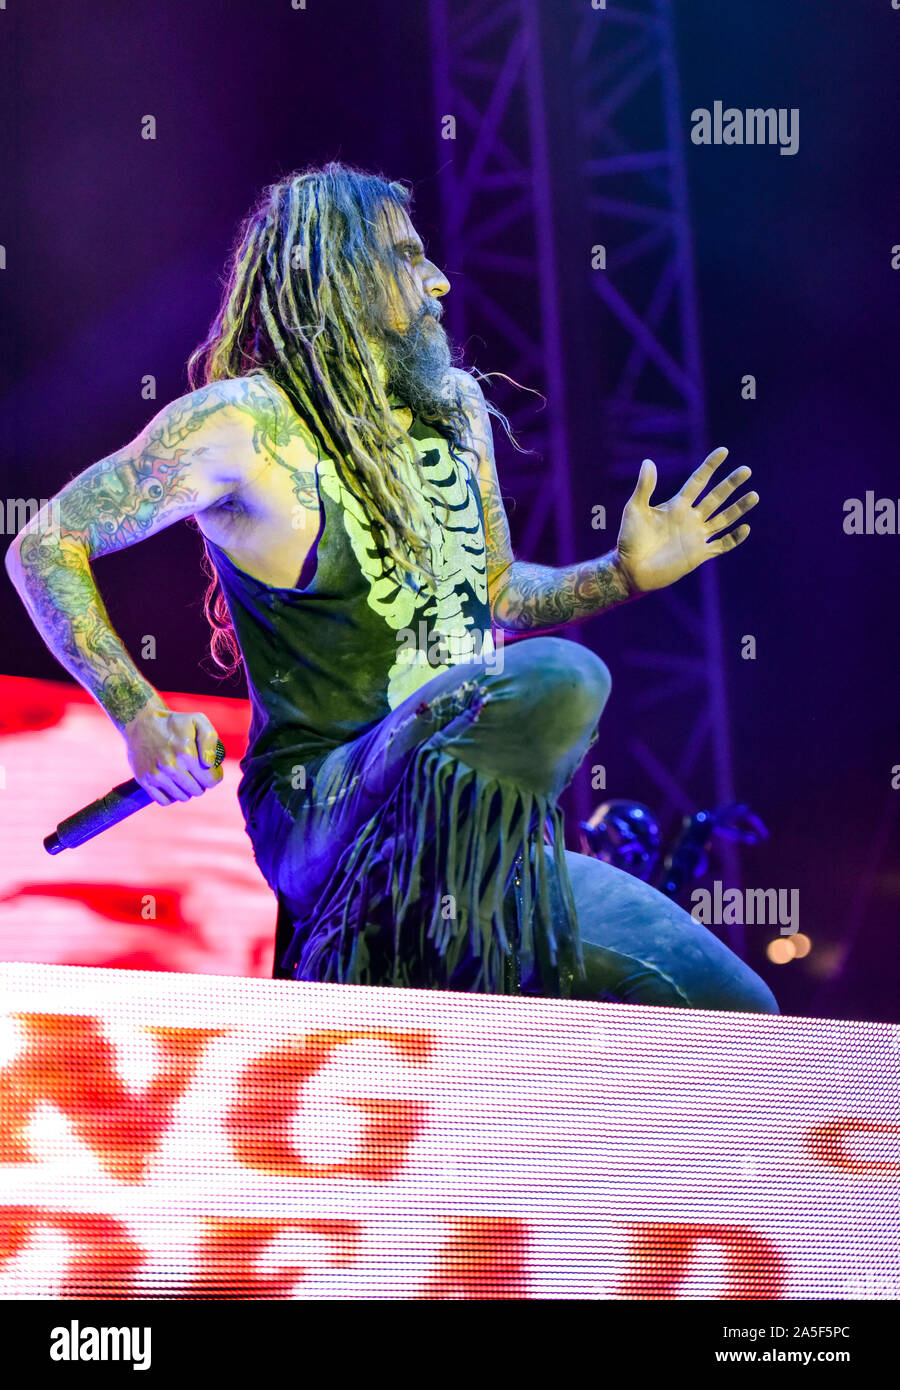 Las Vegas, Nevada, USA. October 19, 2019. Rob Zombie performing on stage at the third annual Las Rageous heavy metal music festival held at the Downtown Las Vegas Events Center. Photo Credit: Ken Howard Images Credit: Ken Howard/Alamy Live News Stock Photo